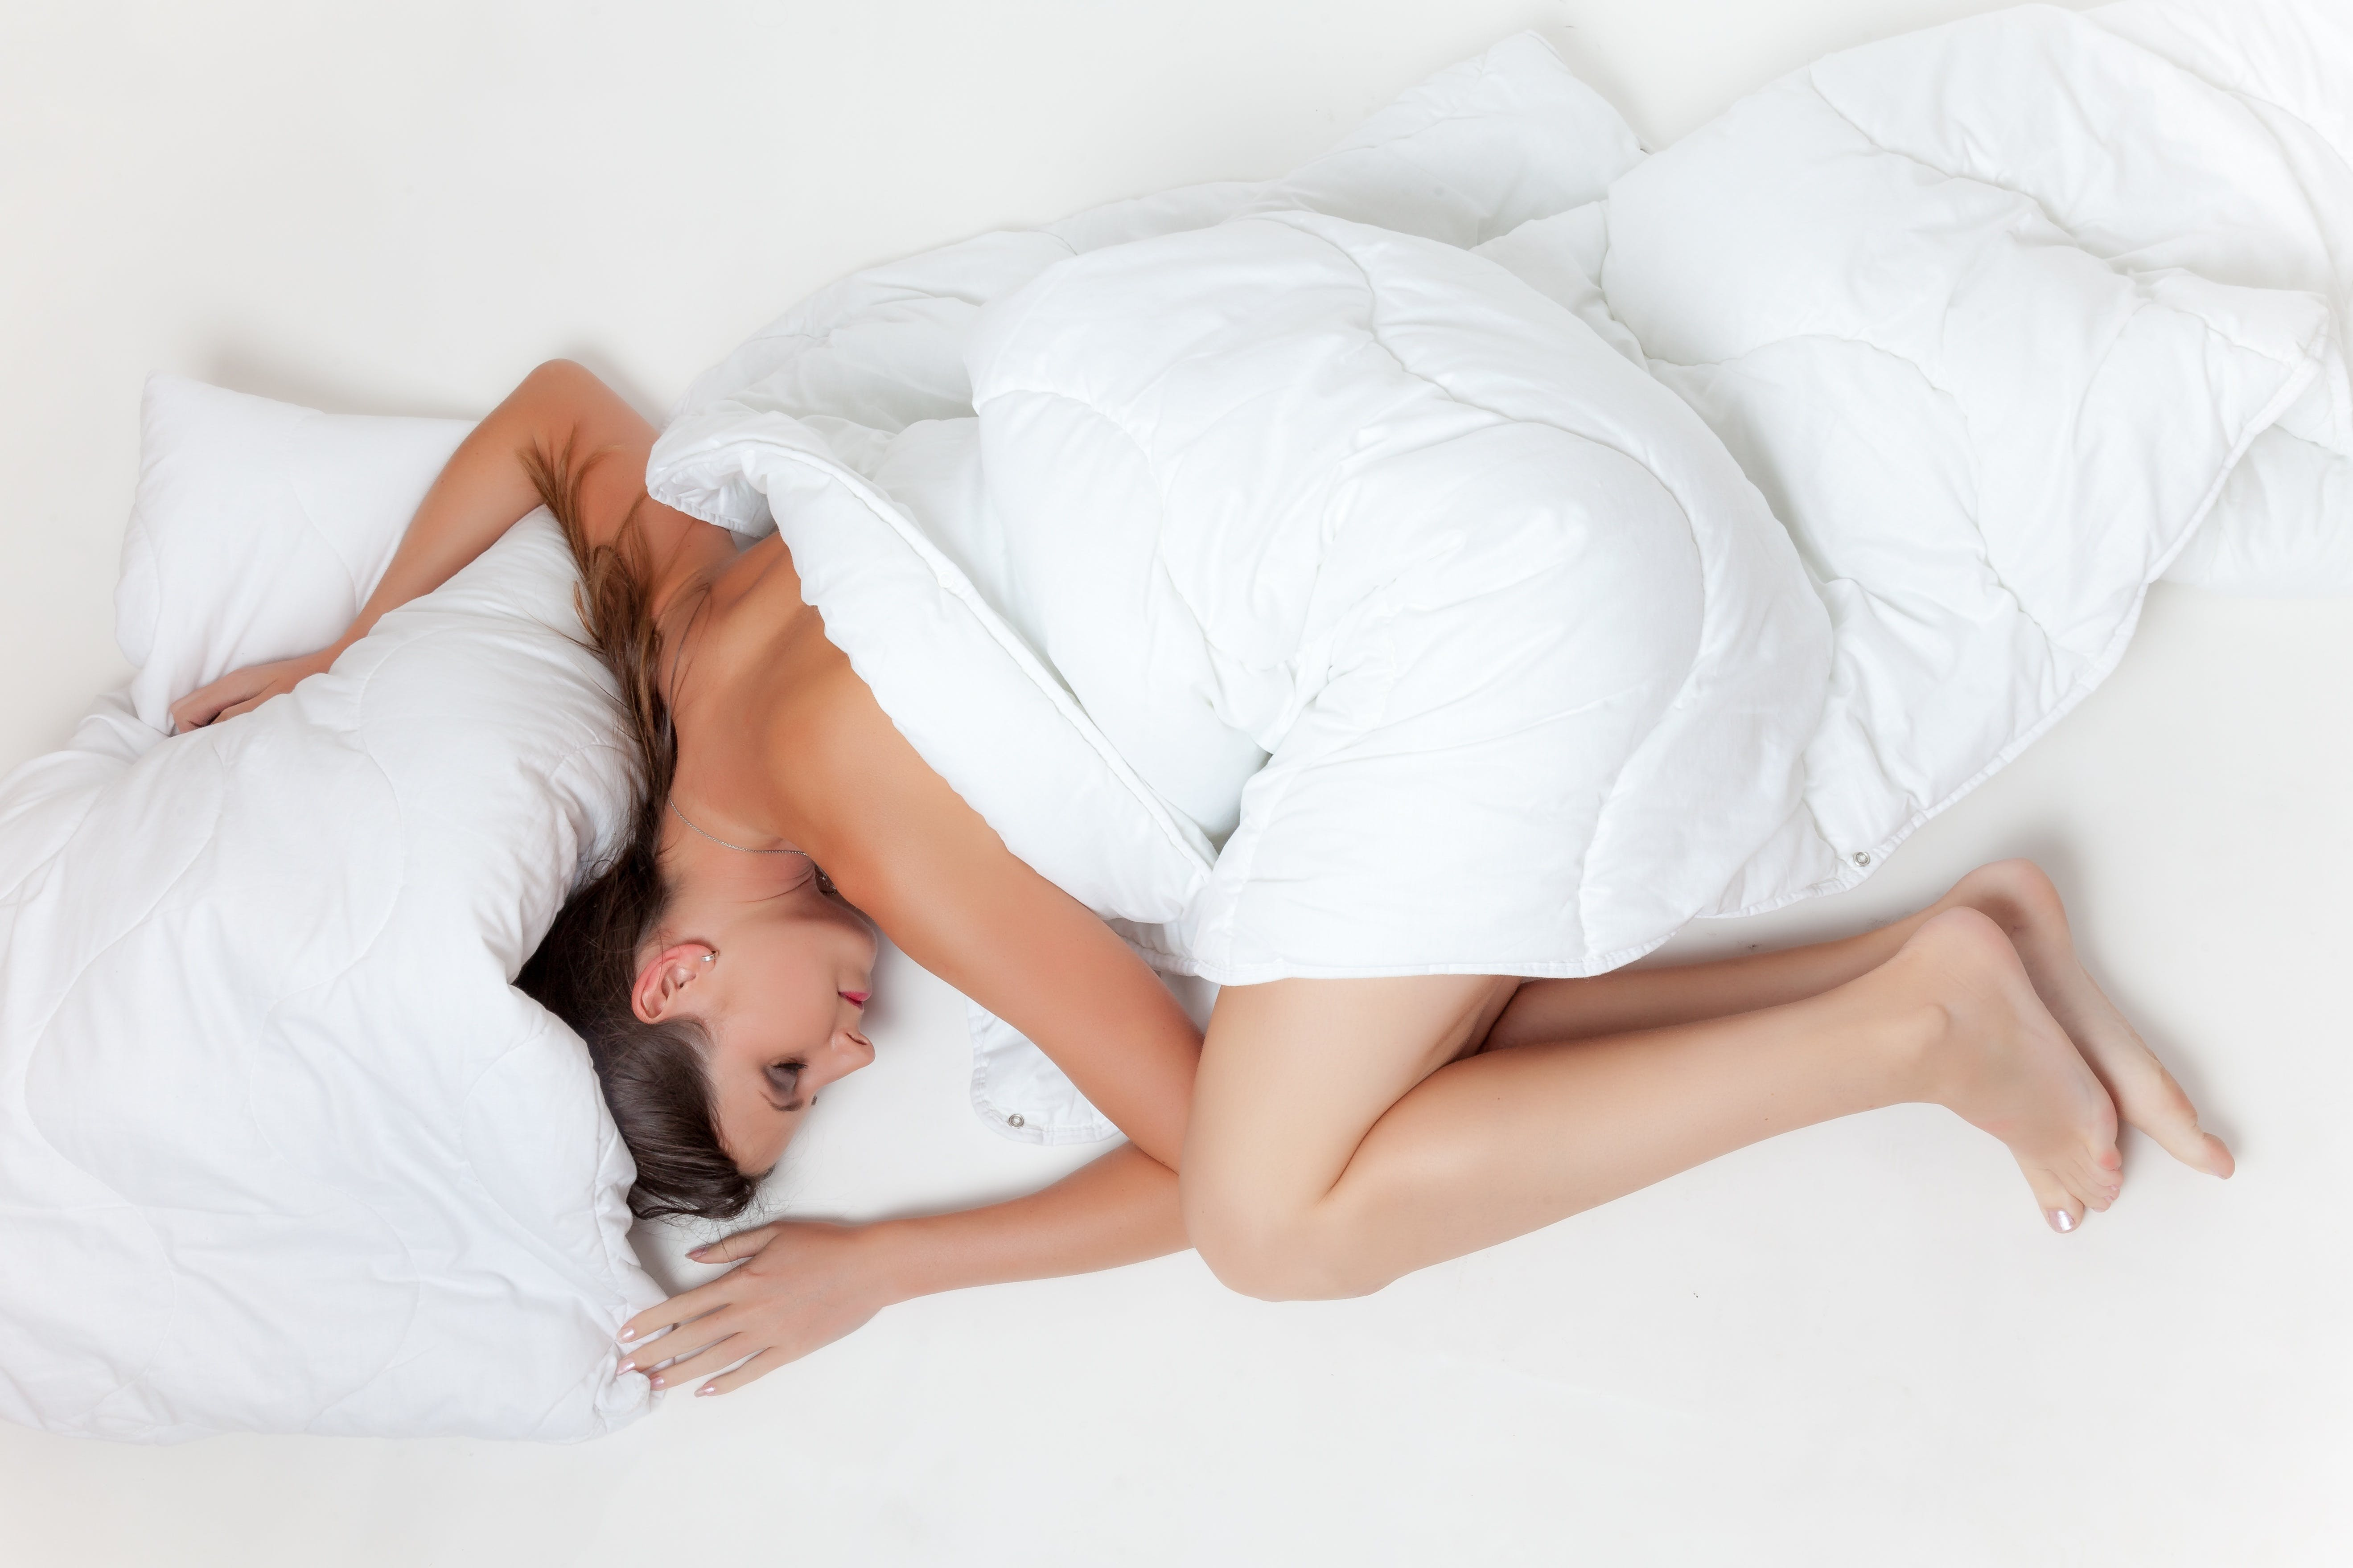 Woman Lying on White Textile Touching White Pillow